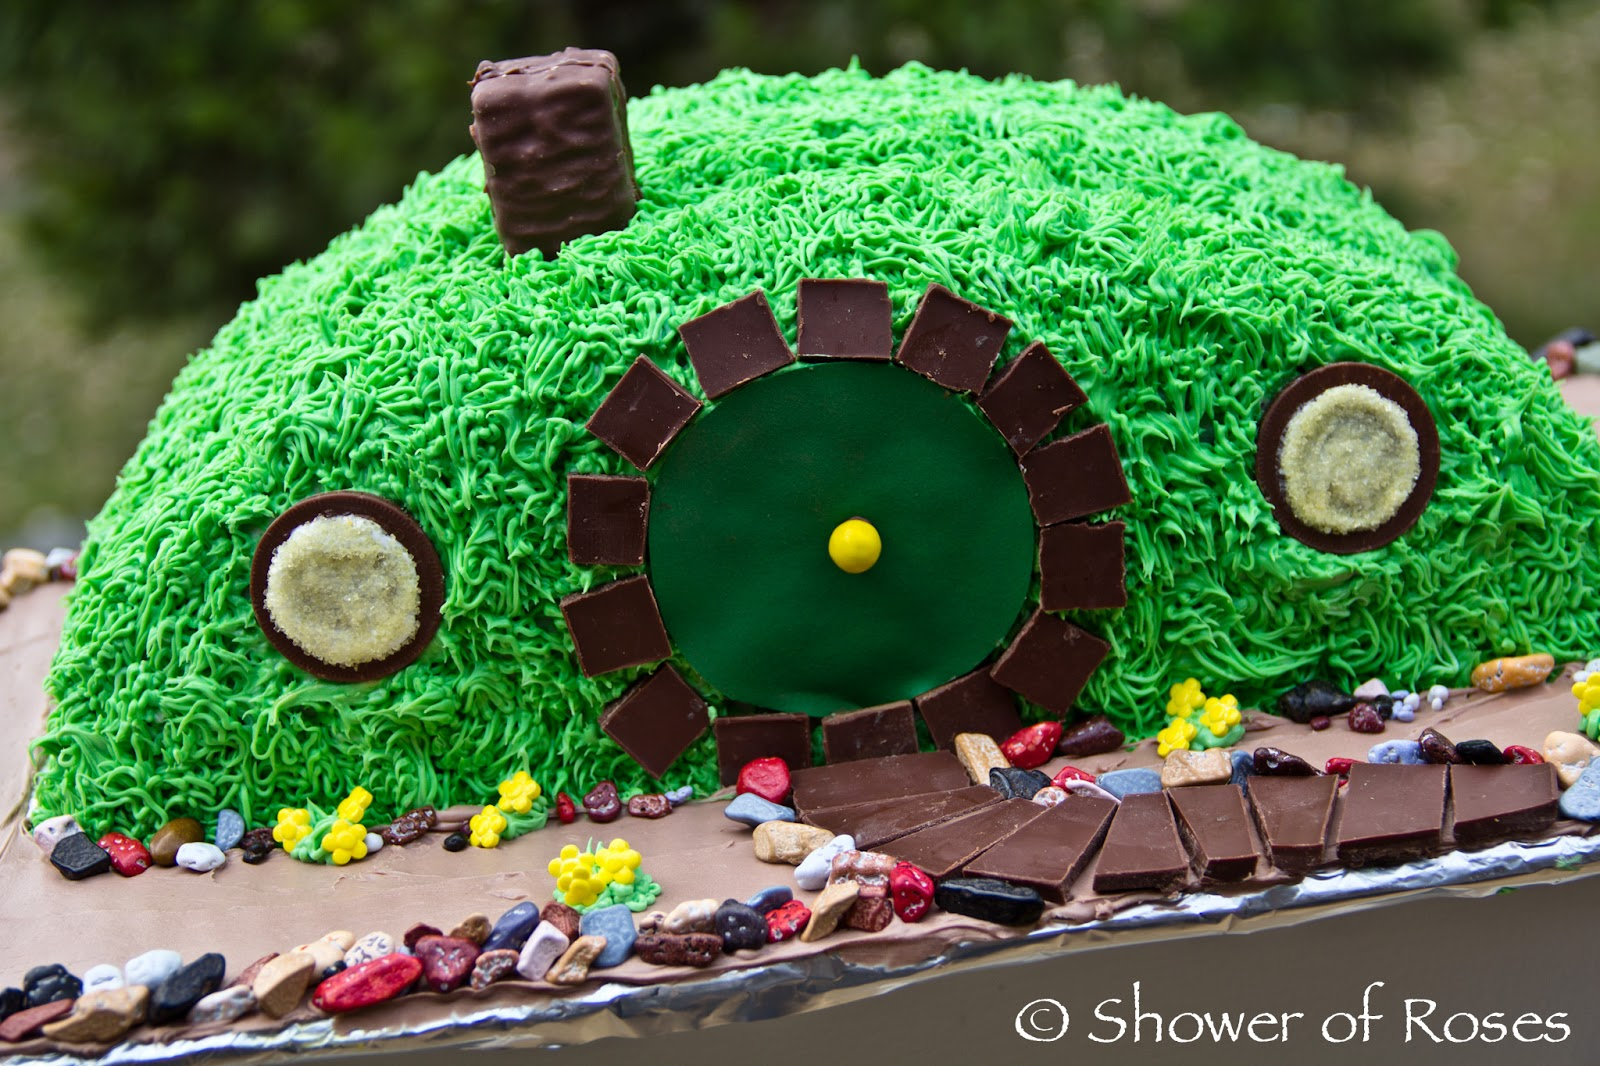 Shower Of Roses Bilbos Hobbit Hole A Hobbit Themed Birthday Cake